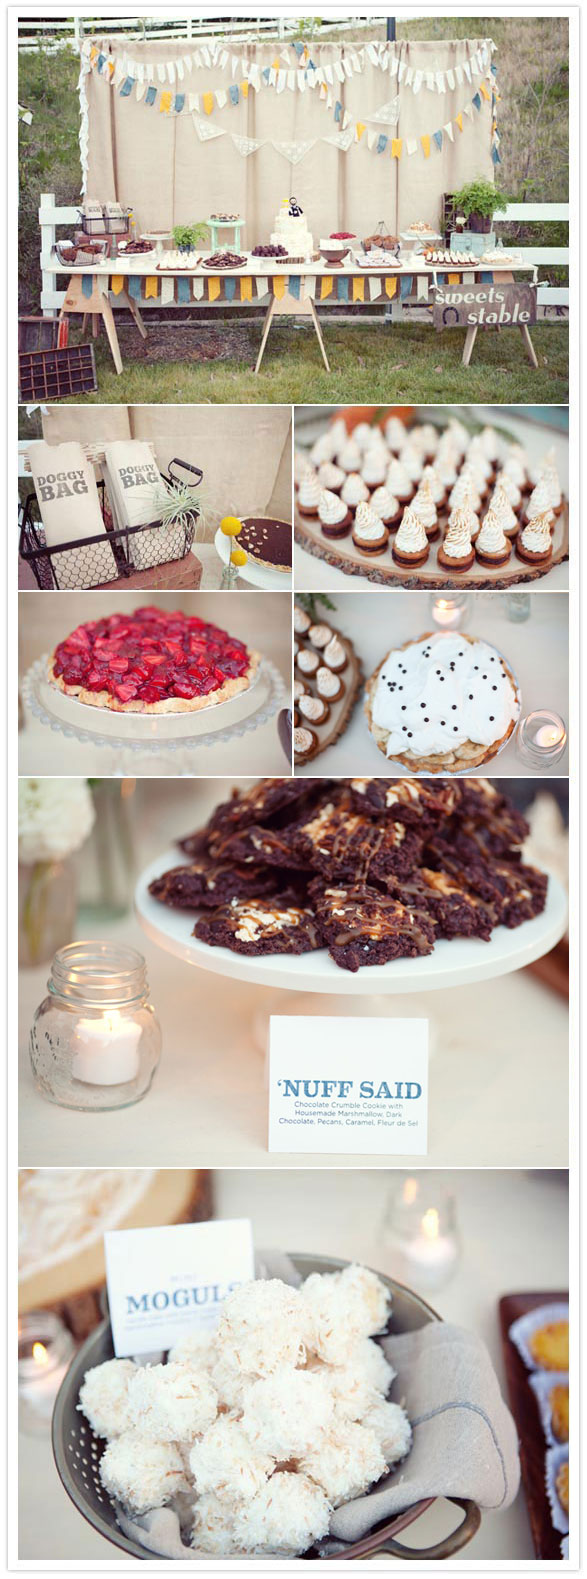 Wedding-dessert-table2